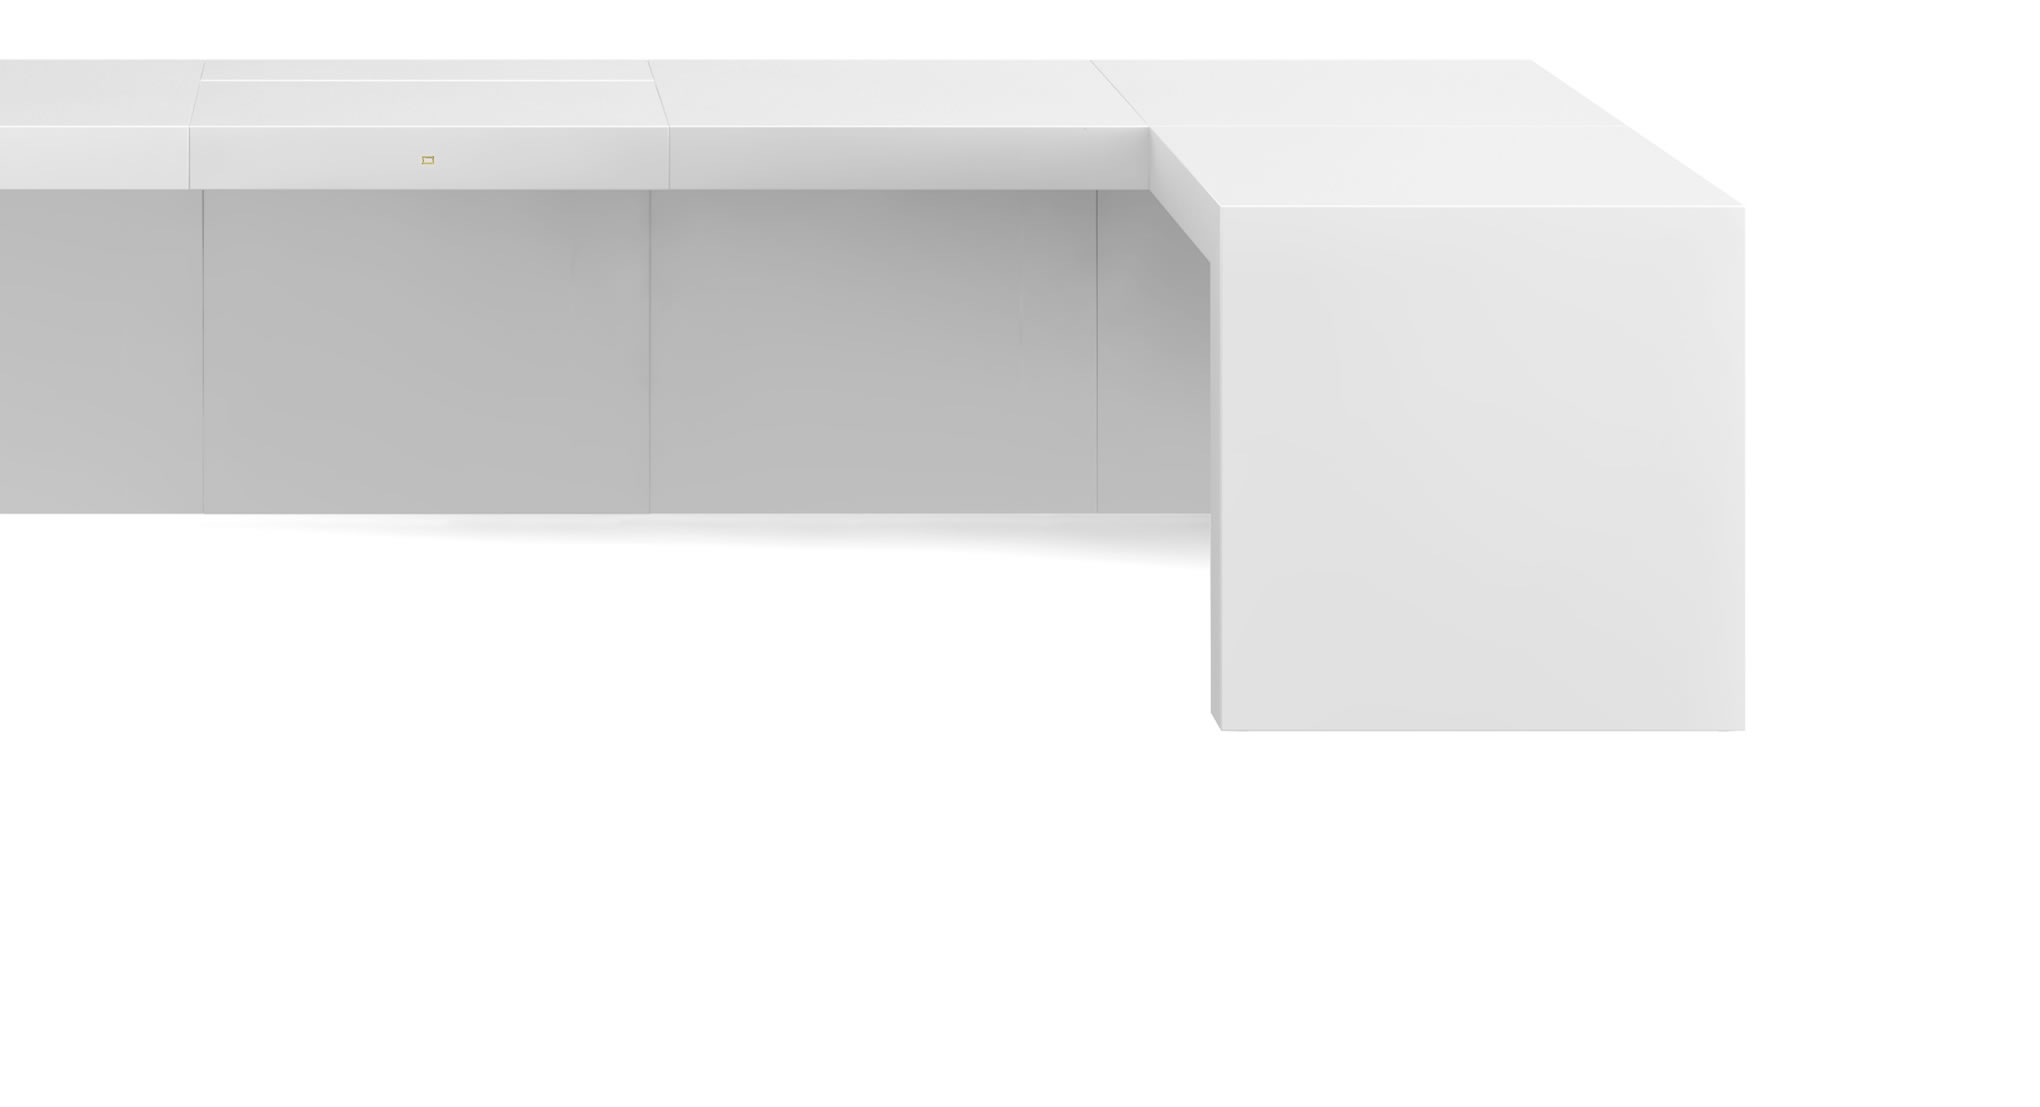 FELIX SCHWAKE DESK III High Gloss White Lacquer Mirror polished Piano Finish Minimalist Office Desk Made of Cubes